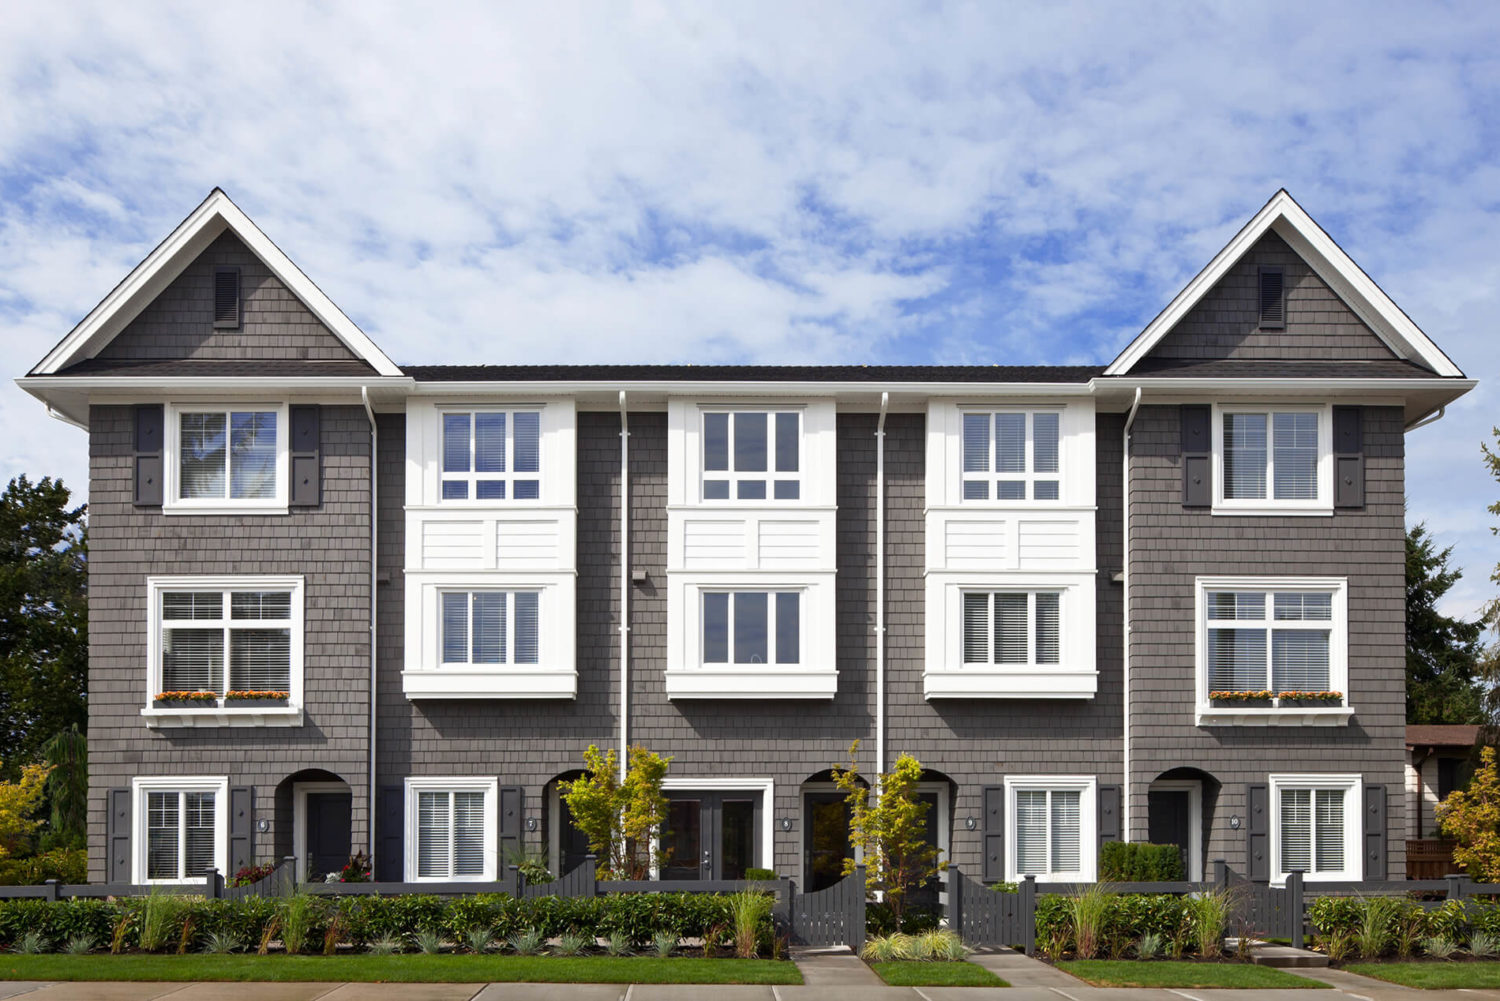 Kings Landing II Townhomes By Dawson + Sawyer – Availability, Prices, Plans